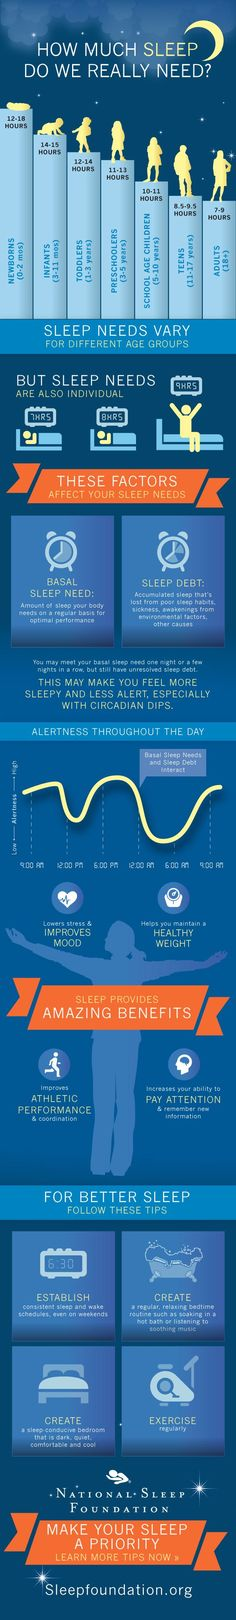 So Just You Know: How Much Sleep Do We Really Need?  http://wellnessbizpro.com/nutrition/how-to-find-your-wellness-niche-in-nutrition/  #healthiswealth #healthcoach #nutrition